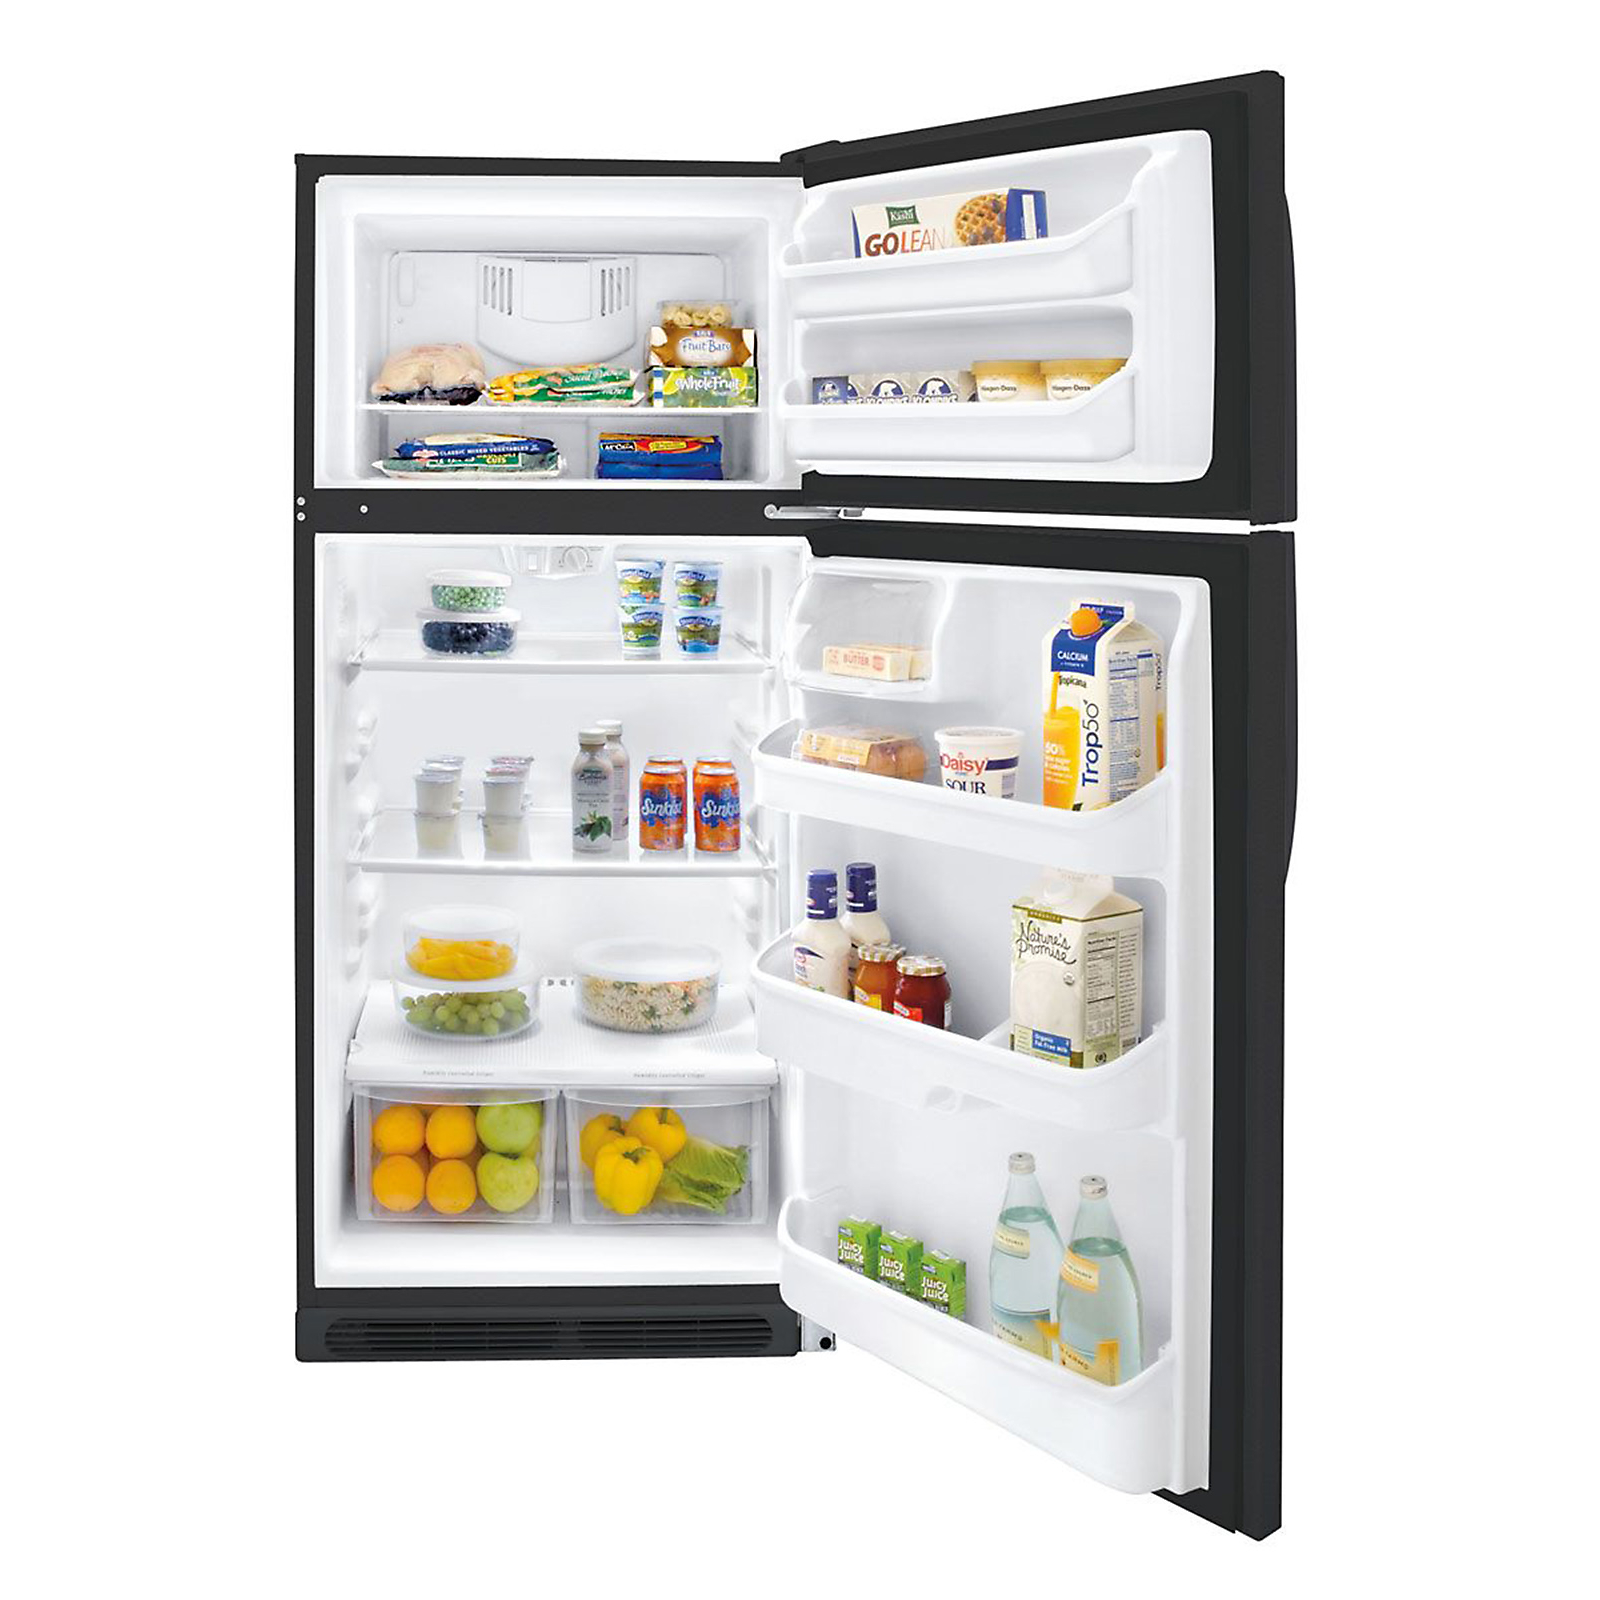 Kenmore 16.5 cu. ft. Top-Freezer Refrigerator - Black